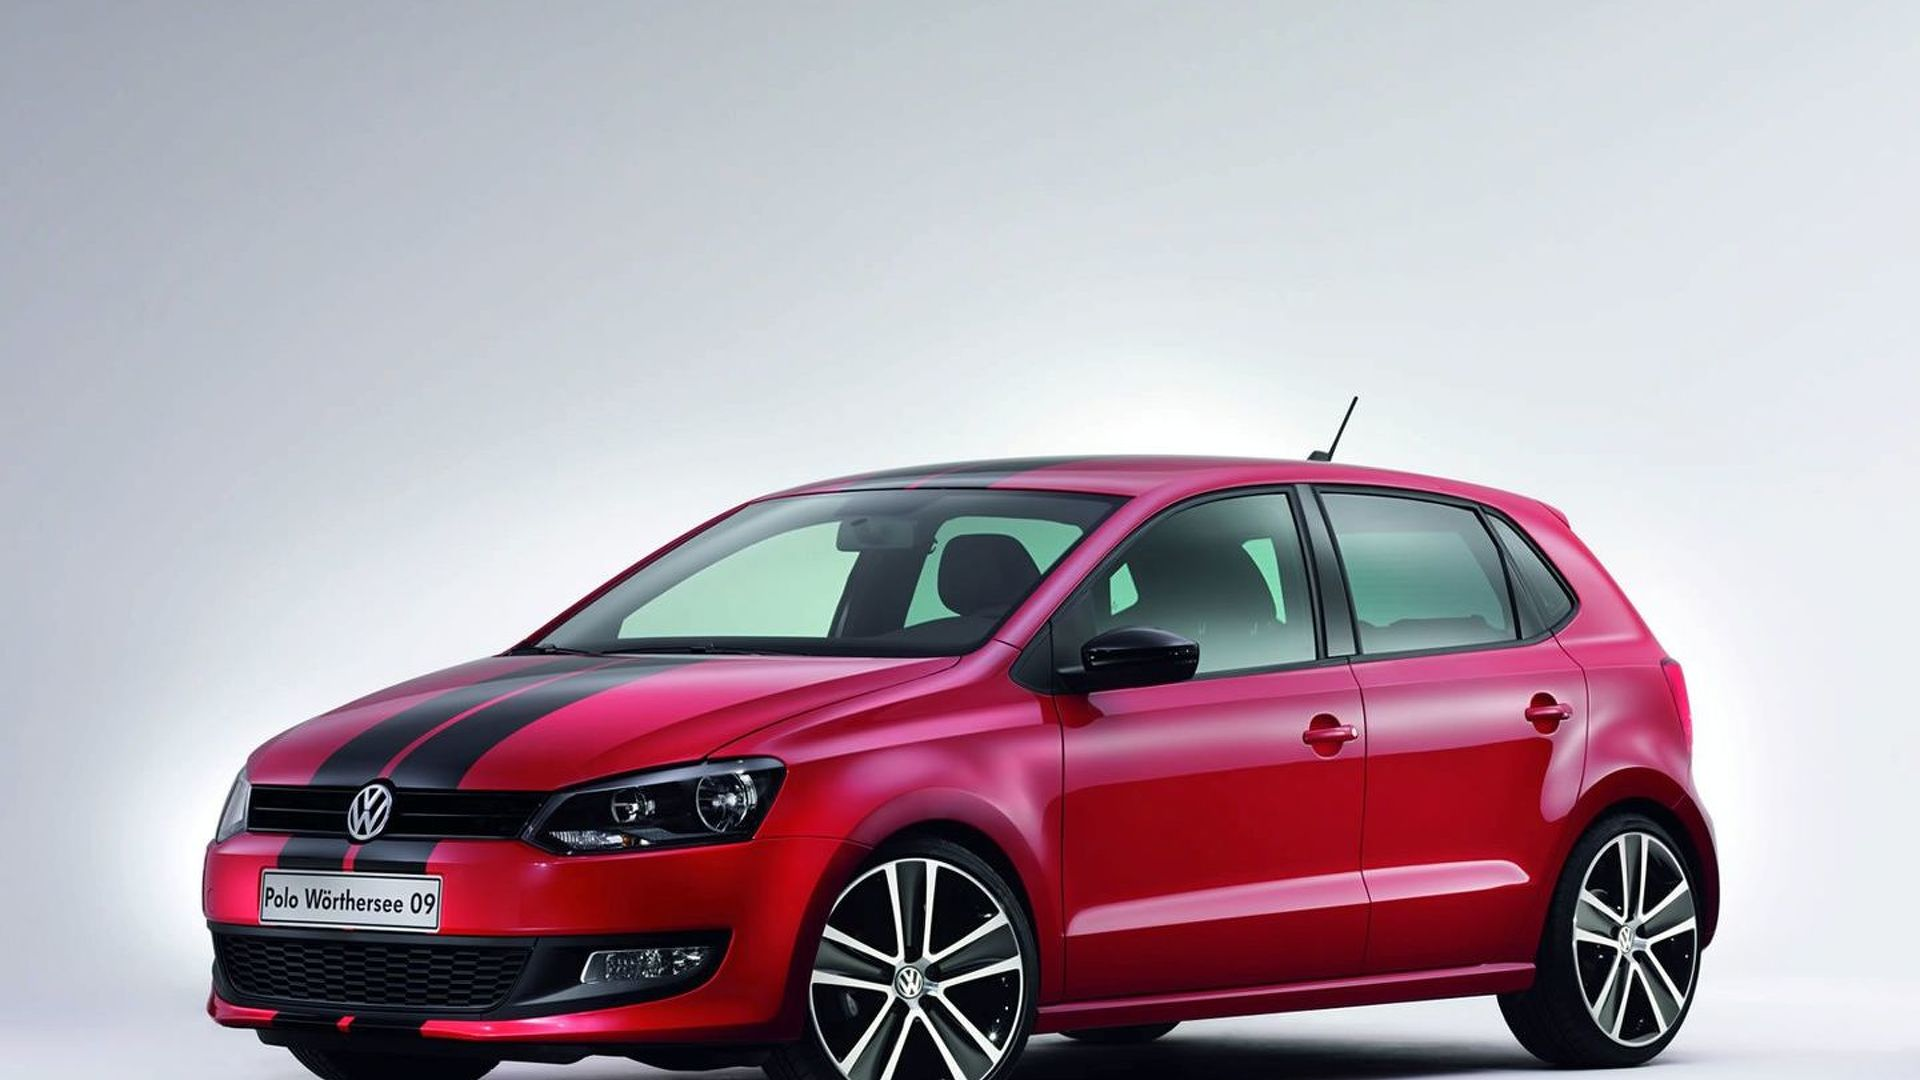 volkswagen polo gti 5 porte news and reviews. Black Bedroom Furniture Sets. Home Design Ideas